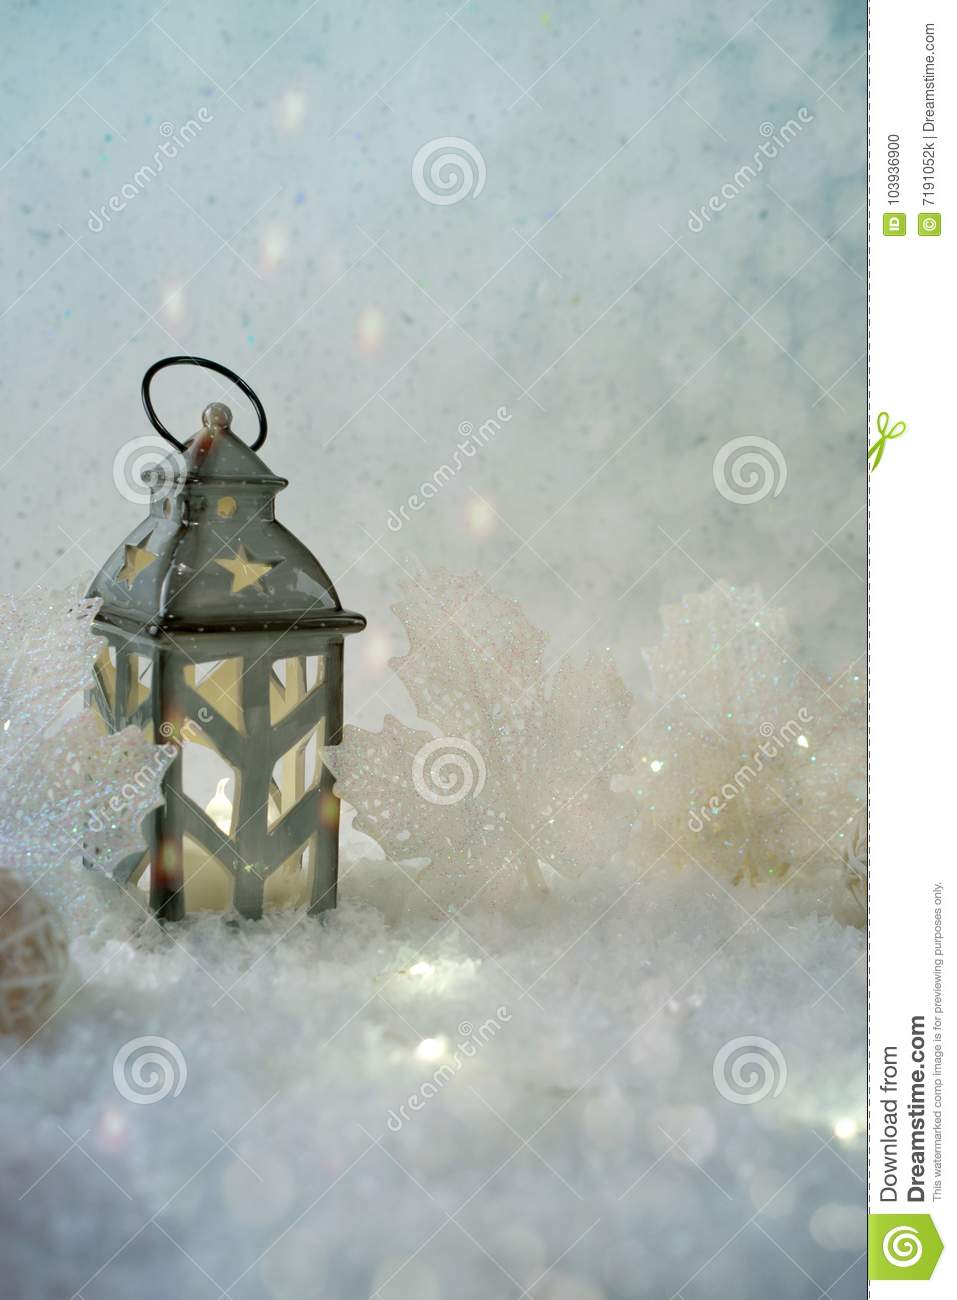 Winter background. Beautiful candlestick in the shape of a house